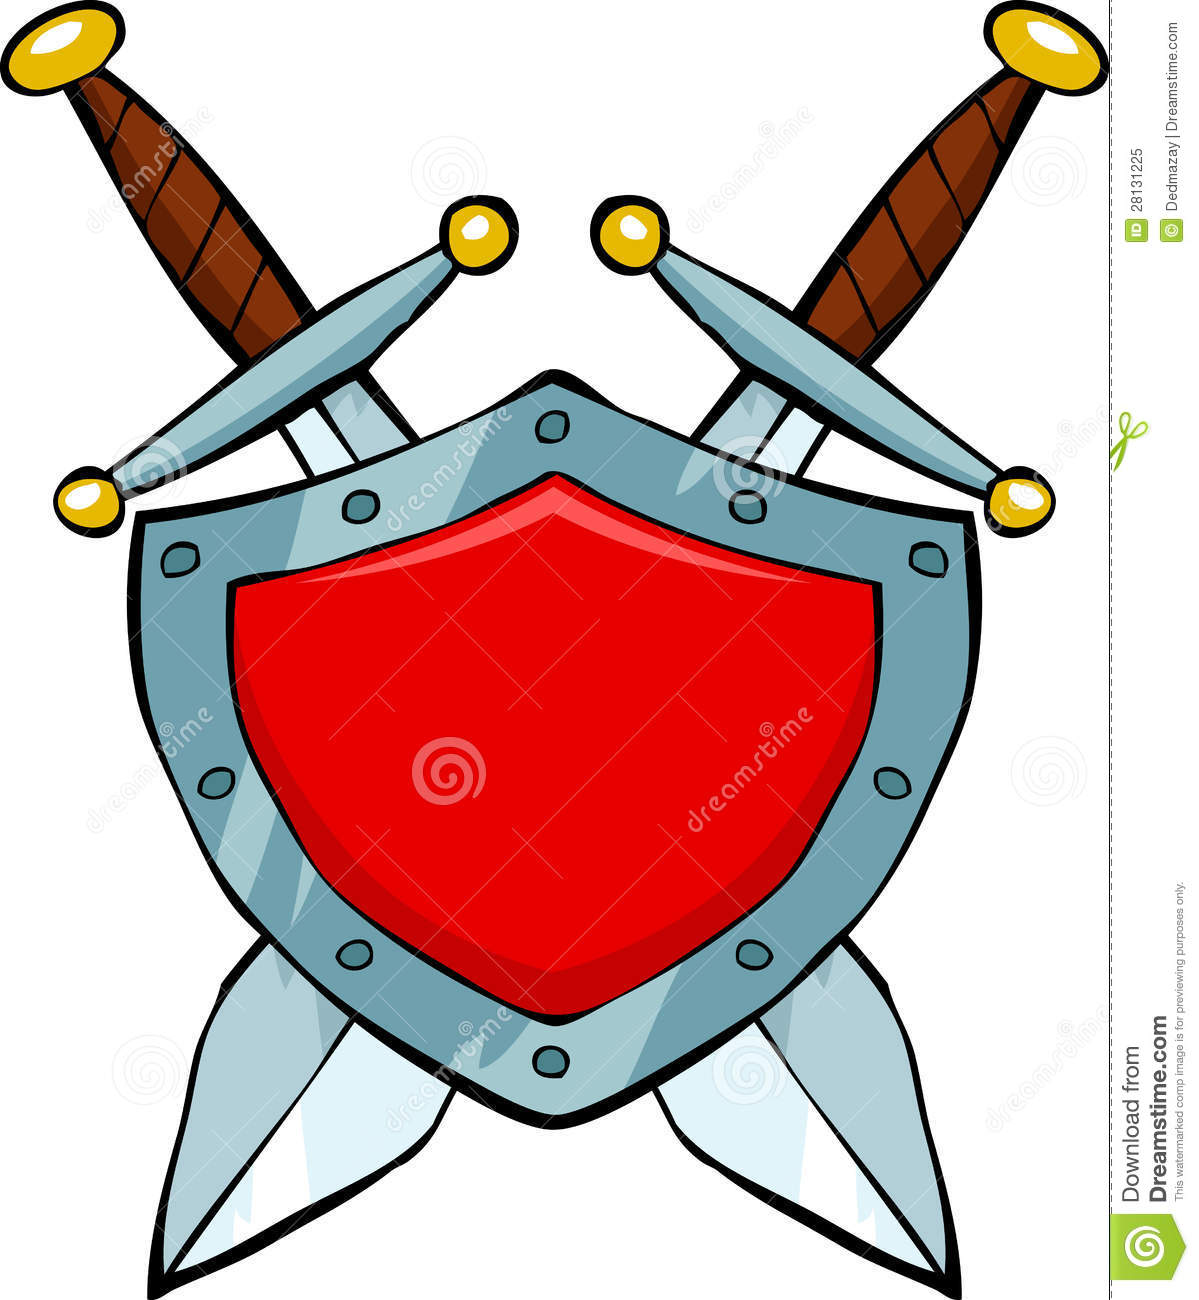 Shield and sword clipart graphic free download Shield and swords | Clipart Panda - Free Clipart Images graphic free download